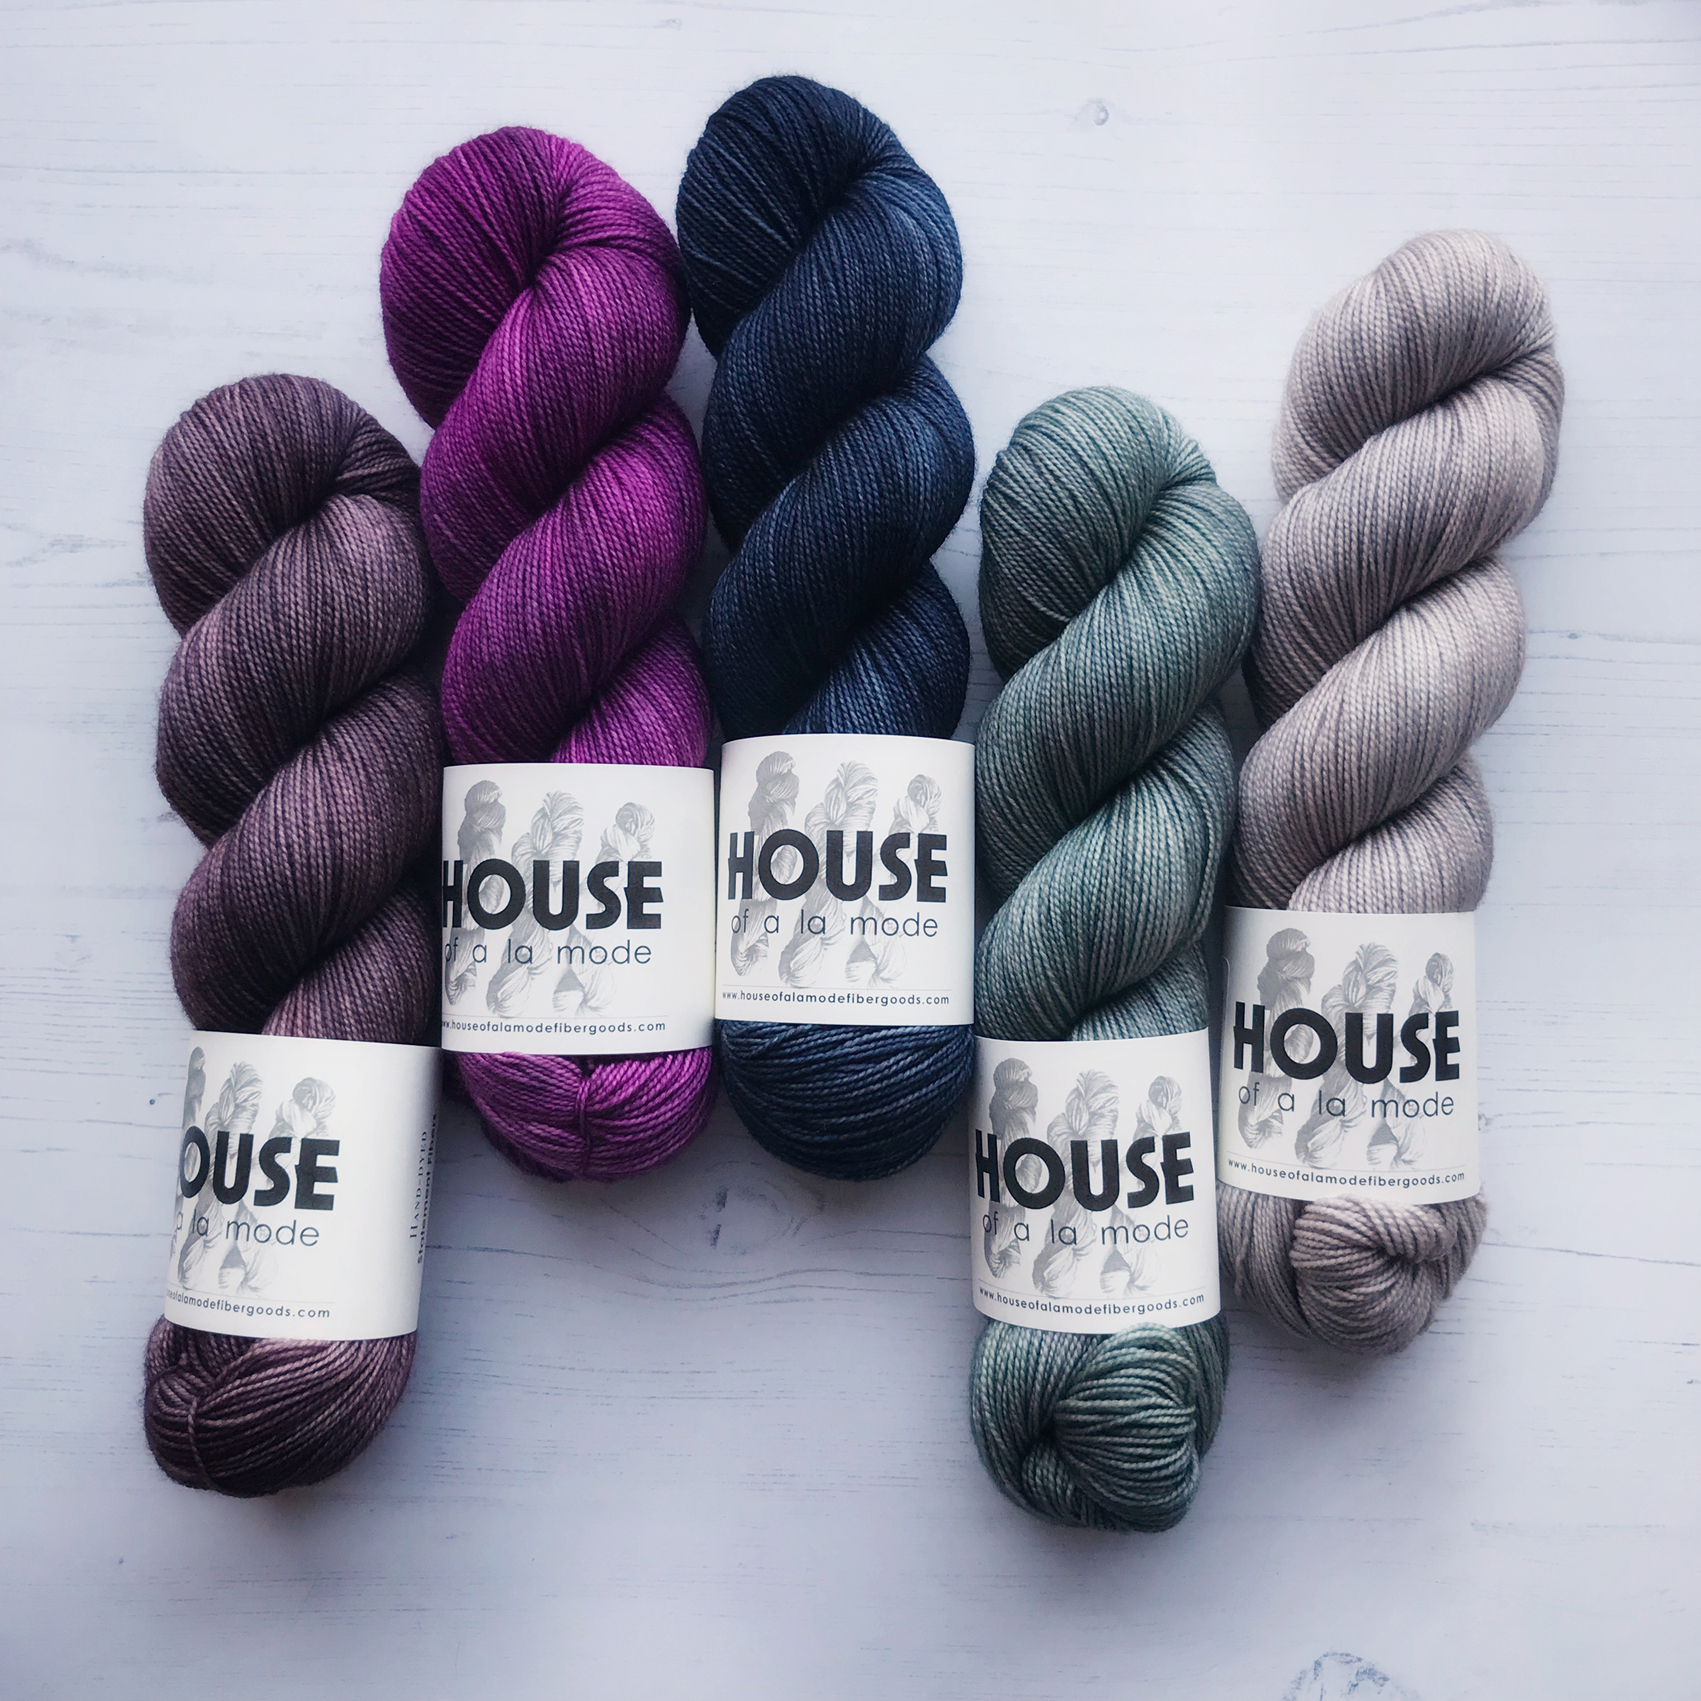 A YARN STORY  Brimming with hand dyed yarns and luxury fibres we are bringing our absolute favourite yarns from Magpie Fibres and House of a la Mode to Edinburgh, including some special treats and exclusive new designs.